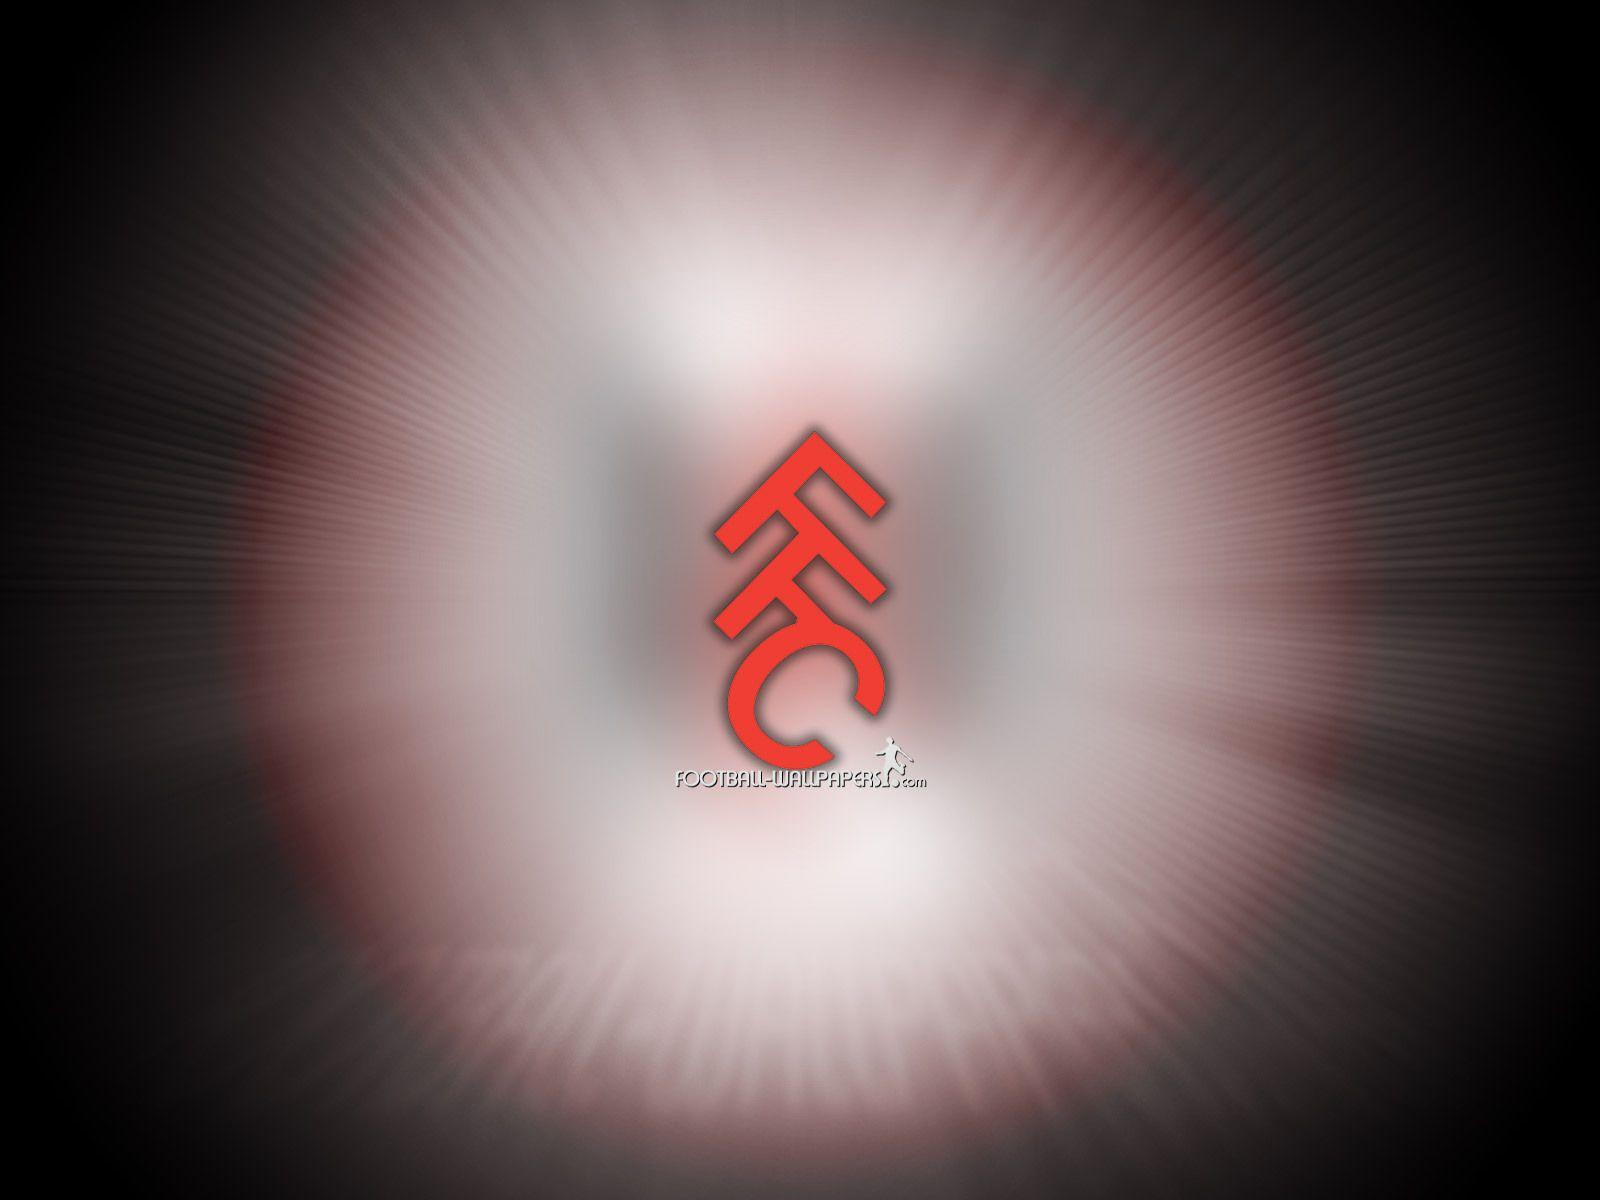 Fulham FC image Fulham HD wallpapers and backgrounds photos